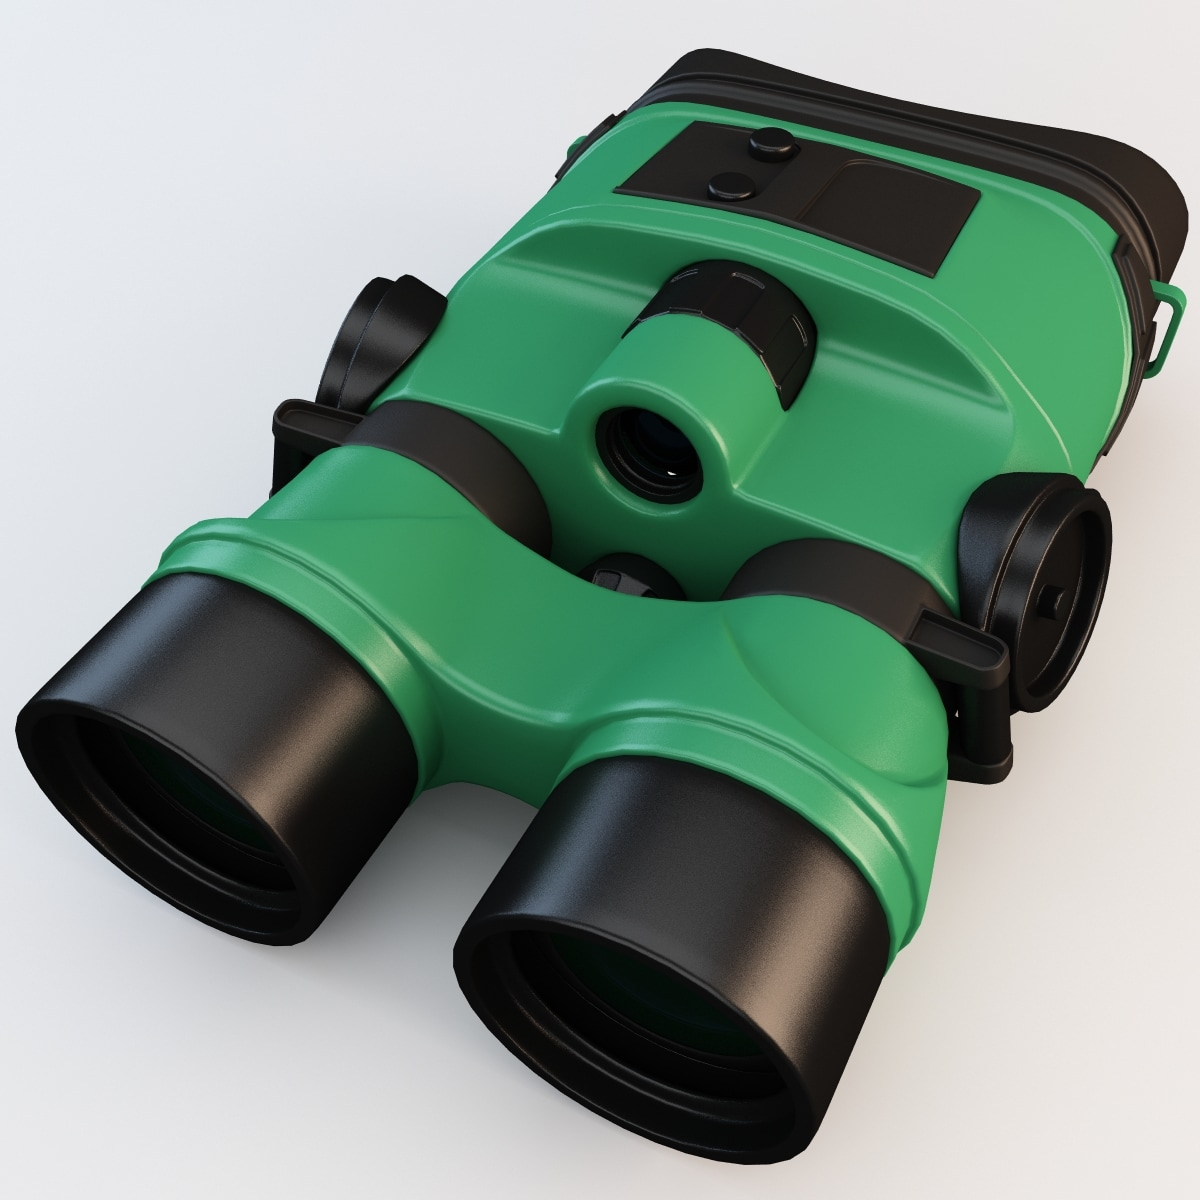 Night_Vision_Goggles_Yukon_Tracker_1x24_002.jpg